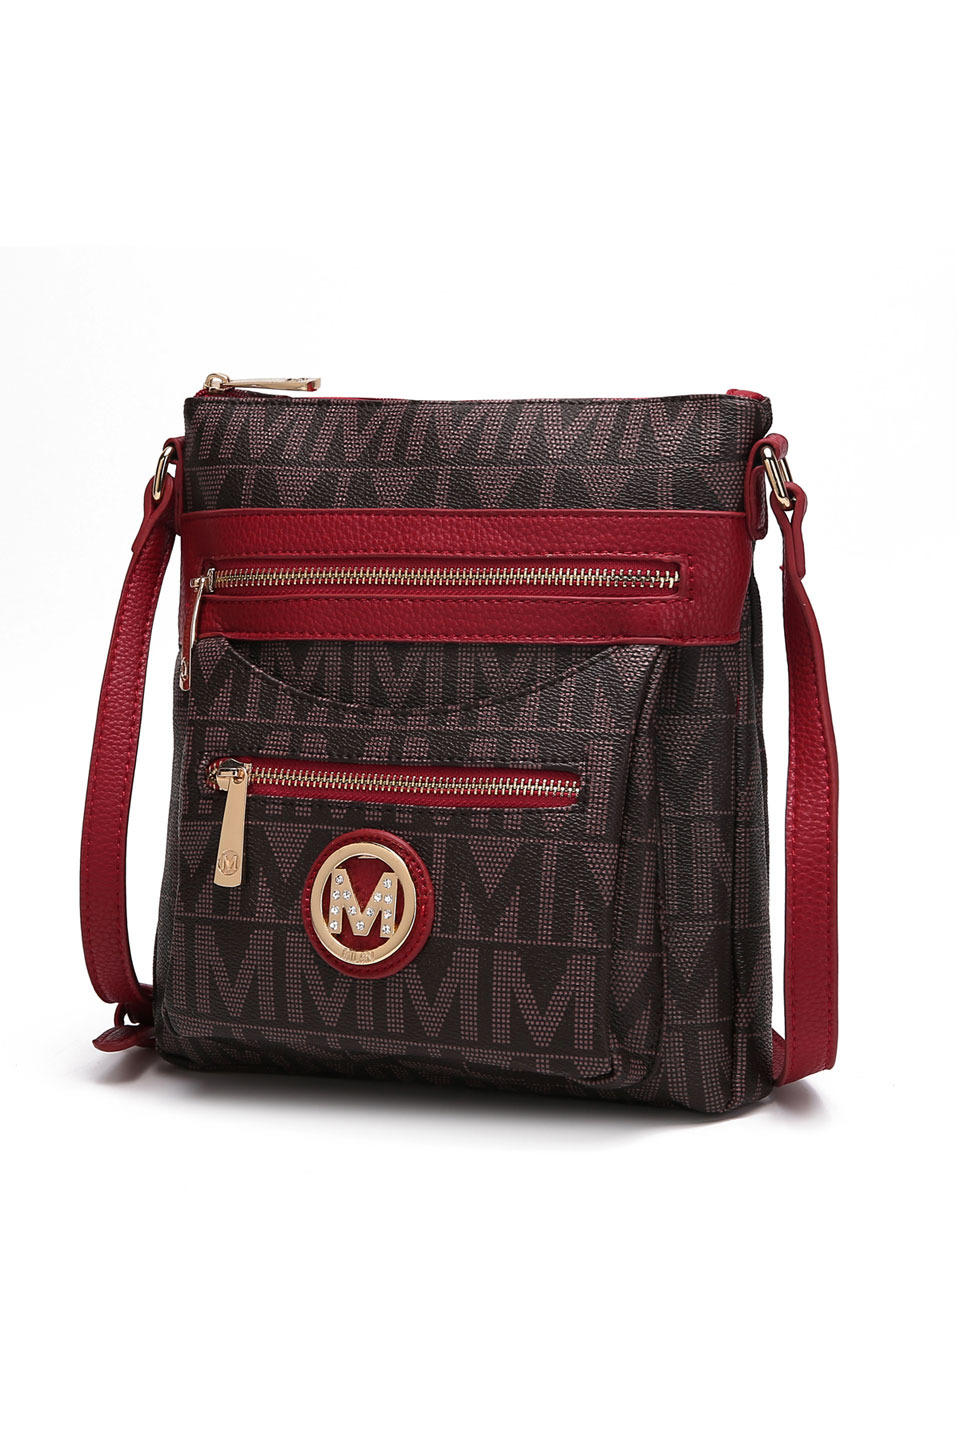 Saniya M Signature Crossbody Bag in Red